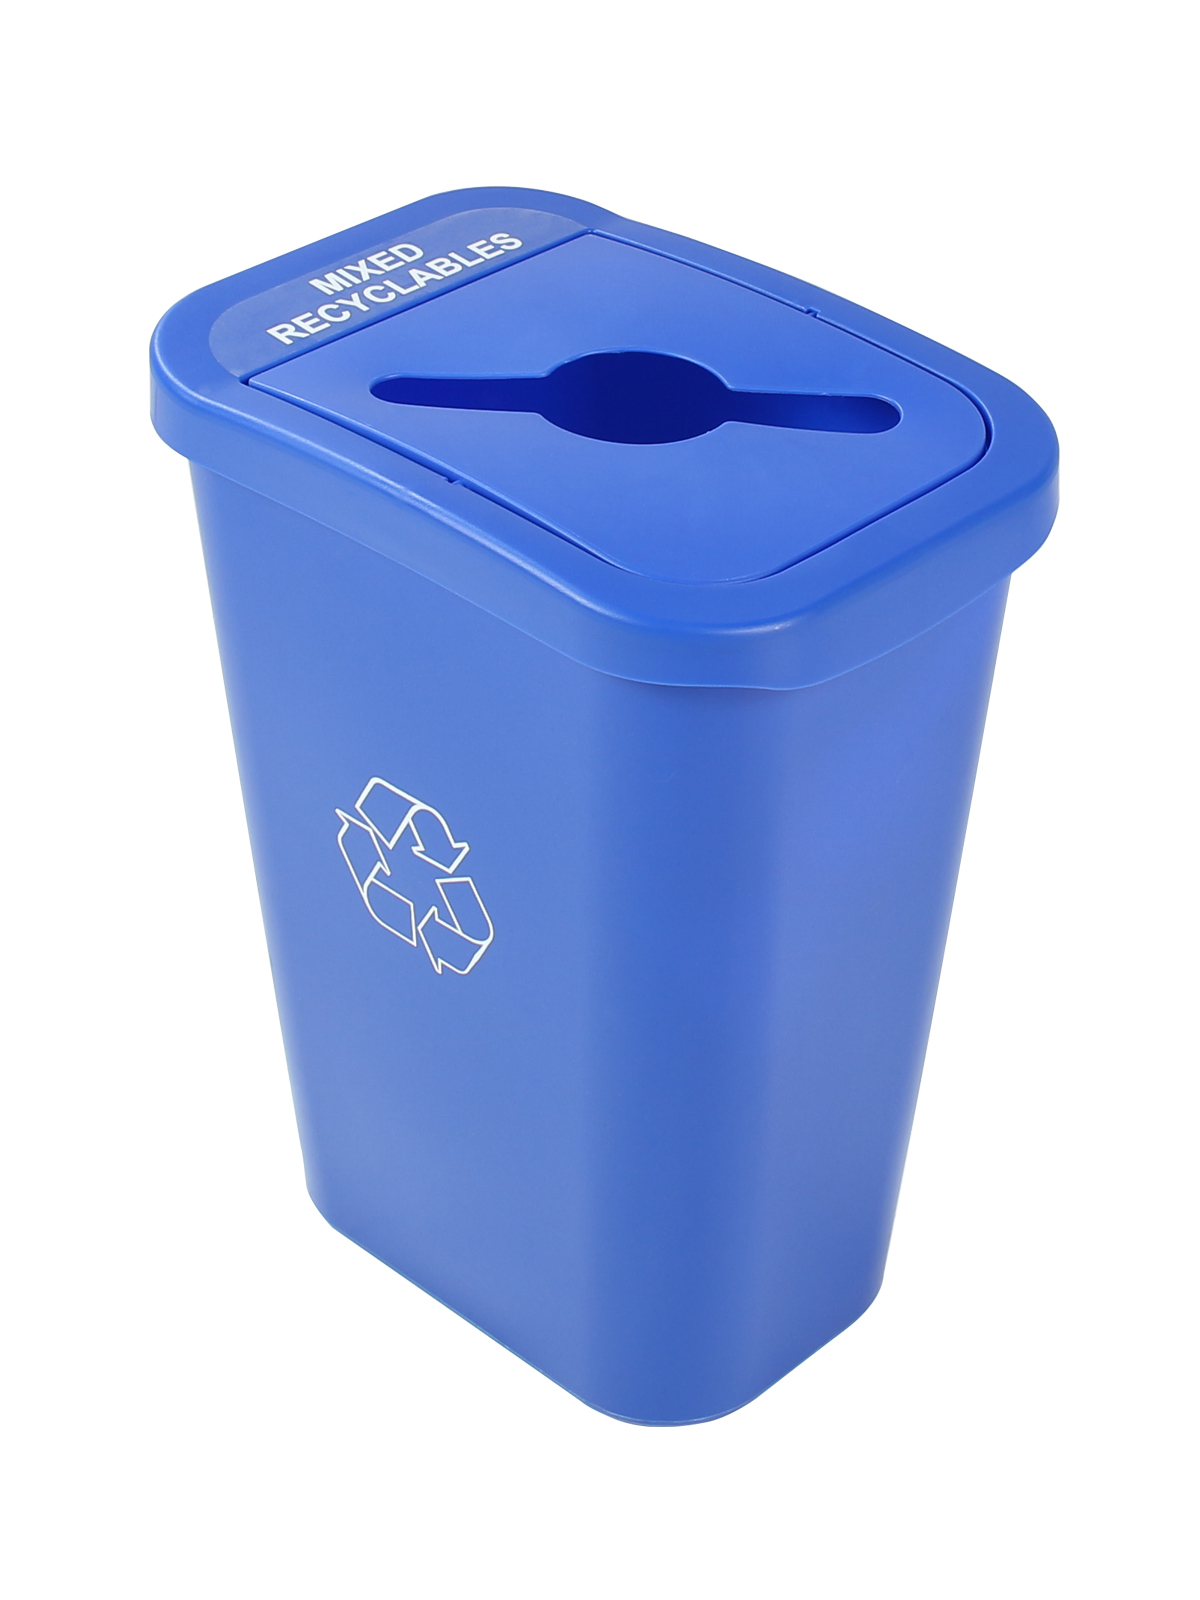 BILLI BOX - SINGLE 10 G - MIXED - BLUE - MIXED RECYCLABLES